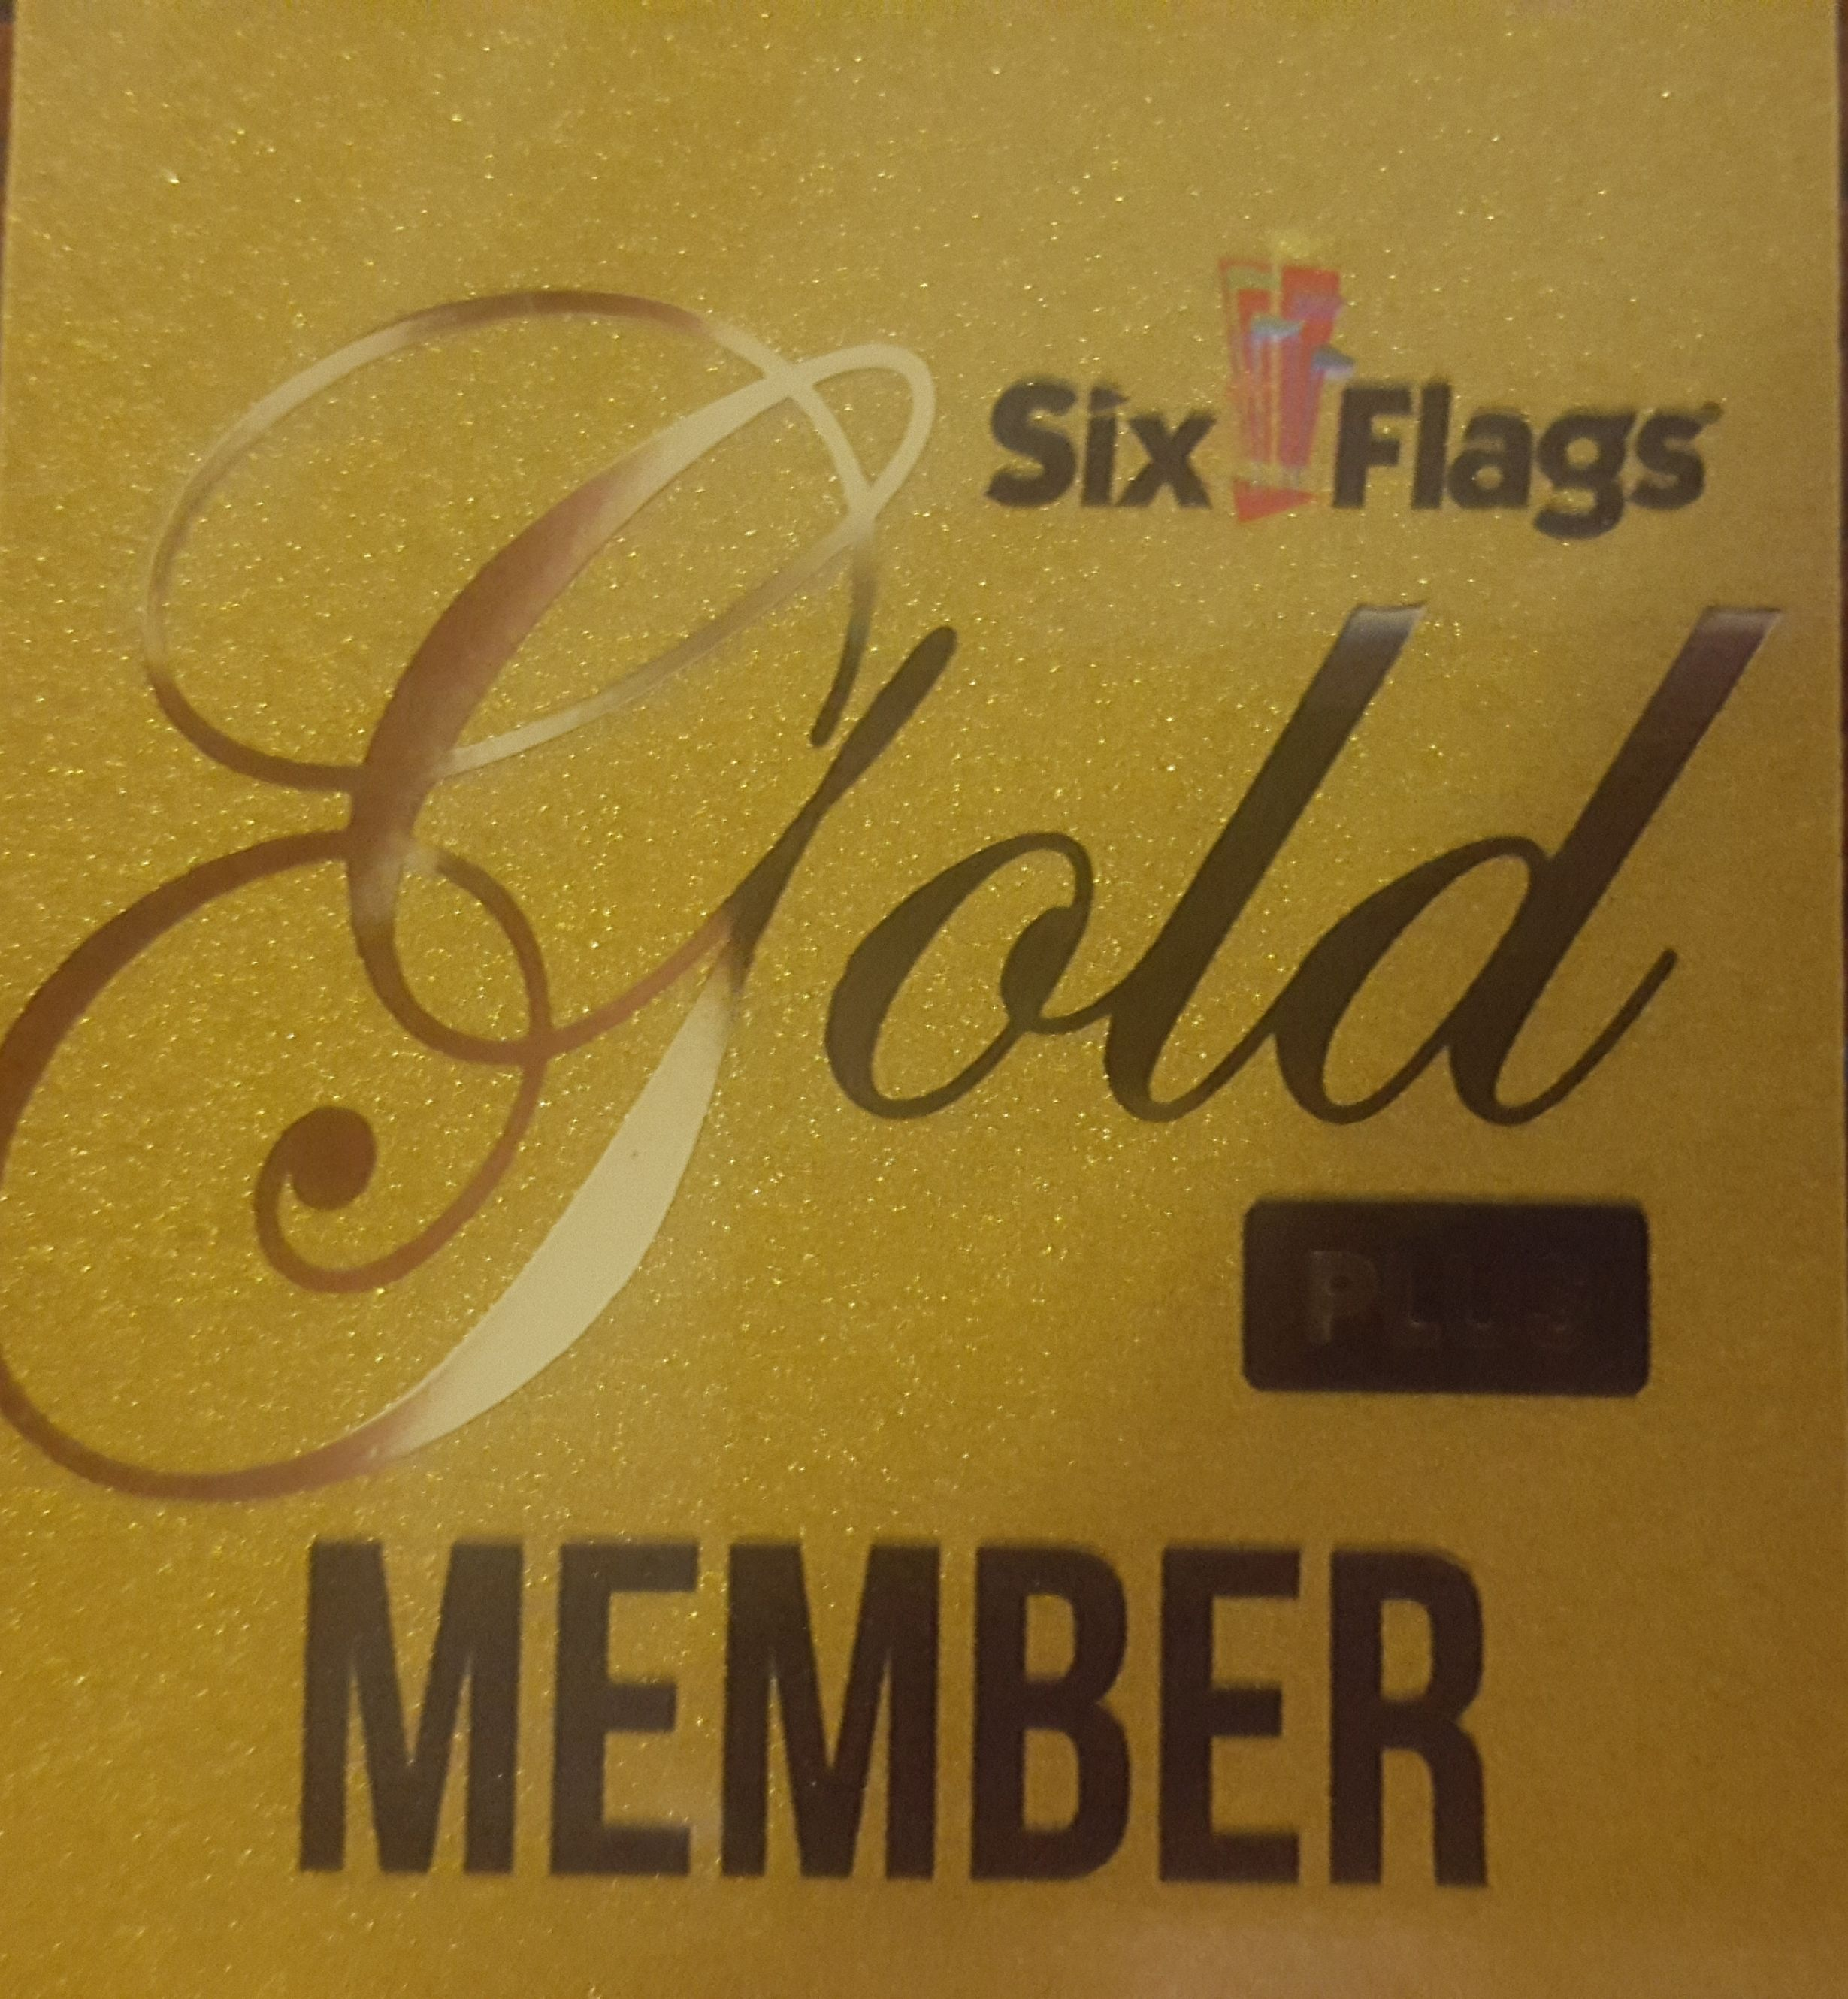 Sign Up For A Membership At Six Flags And Save Your Family Money On Your Trip Today Family Money Six Flags Money Saver